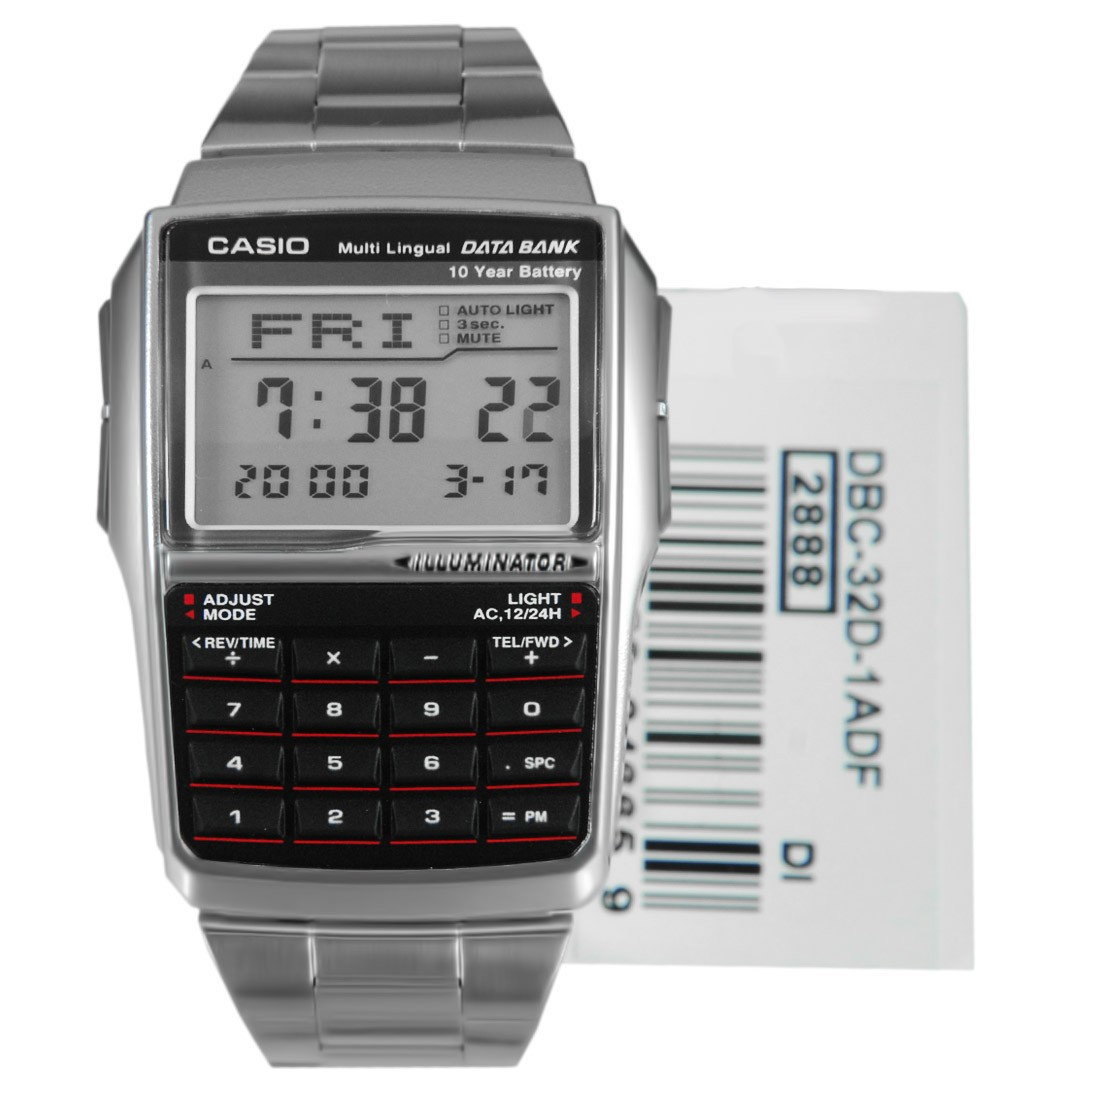 eebf4e22ae9 Casio DBC-32D-1A DBC-32D-1AD DBC-32D-1 DBC-32D DBC-32D-1ADF Data Bank  Calculator Watch AUTHENTIC with WARRANTY